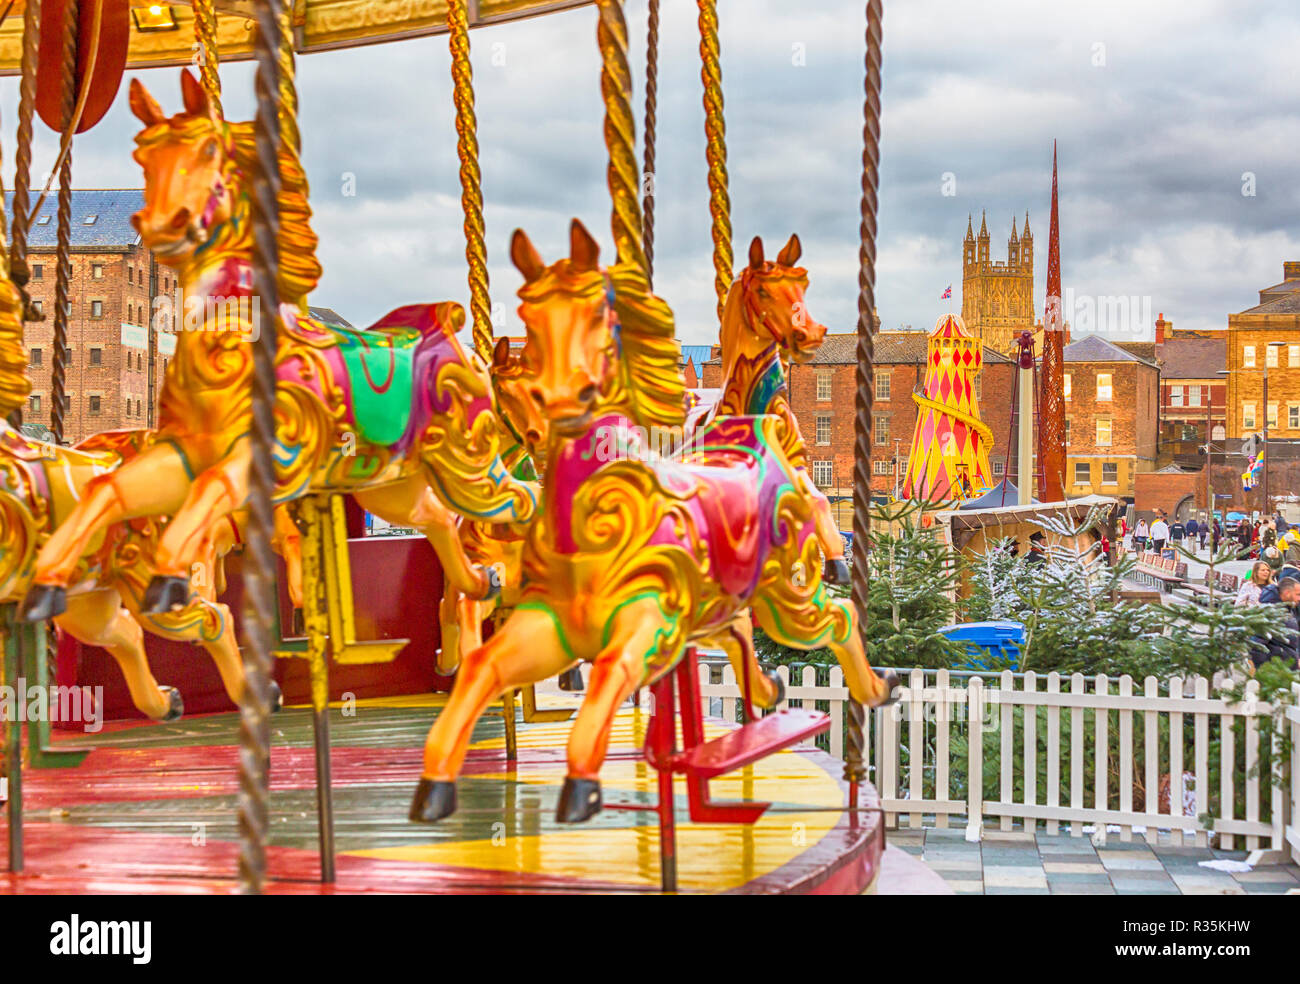 Merry go round carousel fairground ride at Gloucester Quays Victorian Christmas Market with tower of Gloucester Cathedral, Gloucester. hdr effect Stock Photo